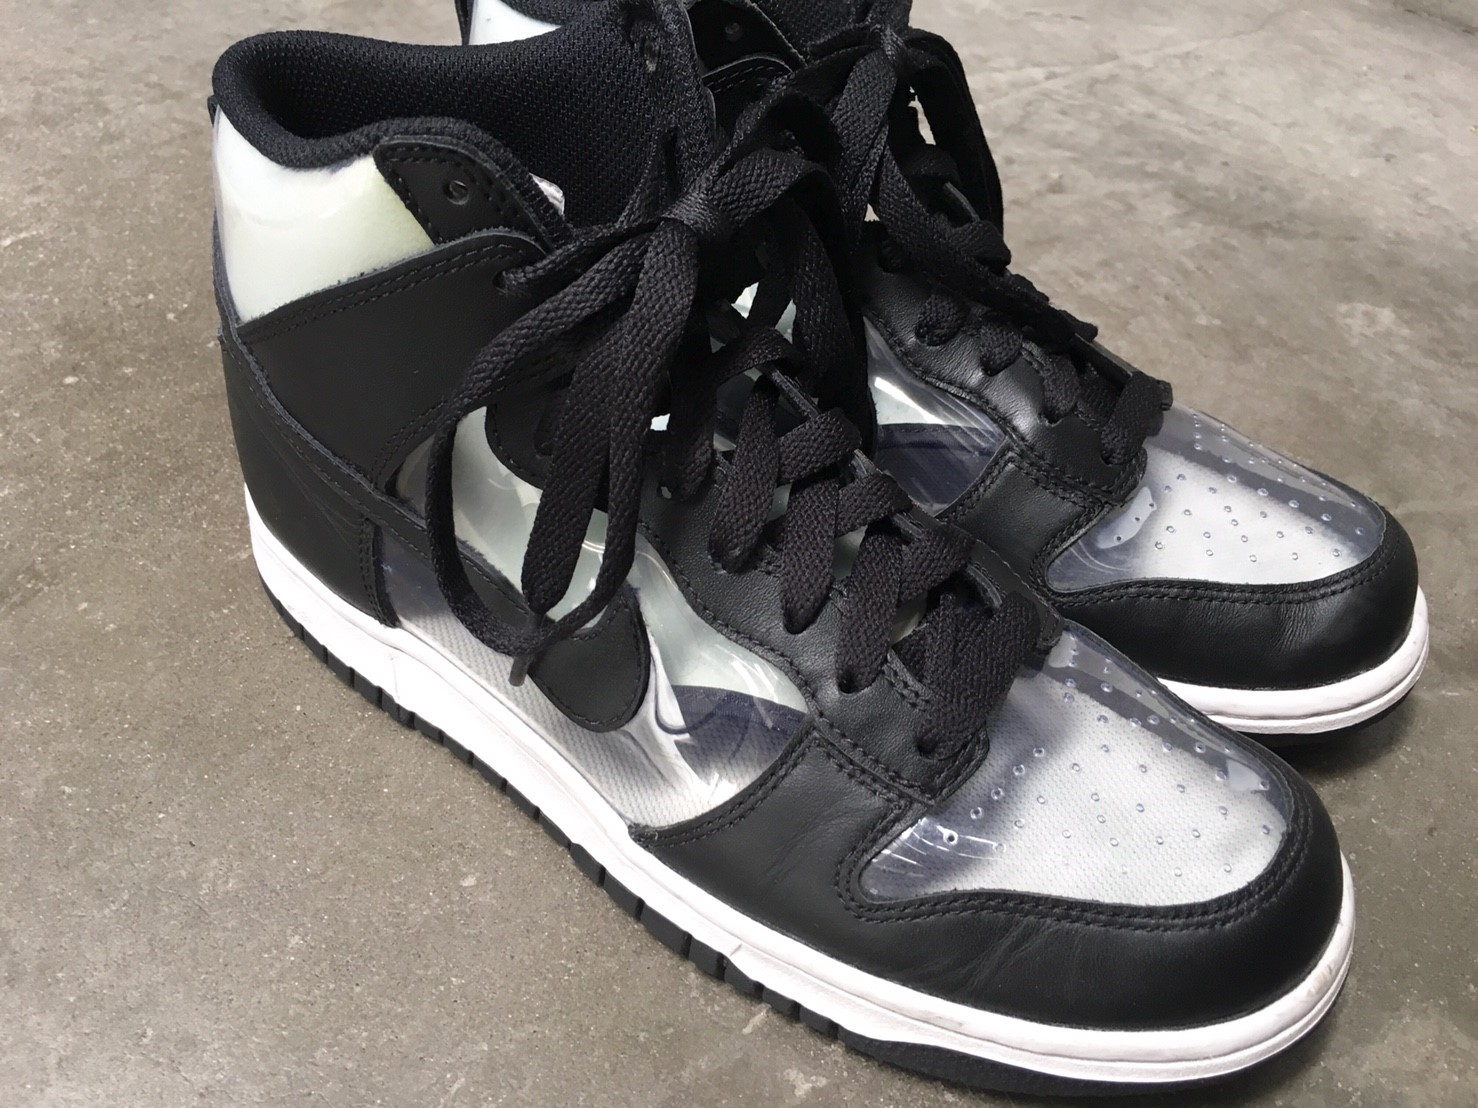 MARCY_mywishlist_COMME des GARCONS x NIKE_2